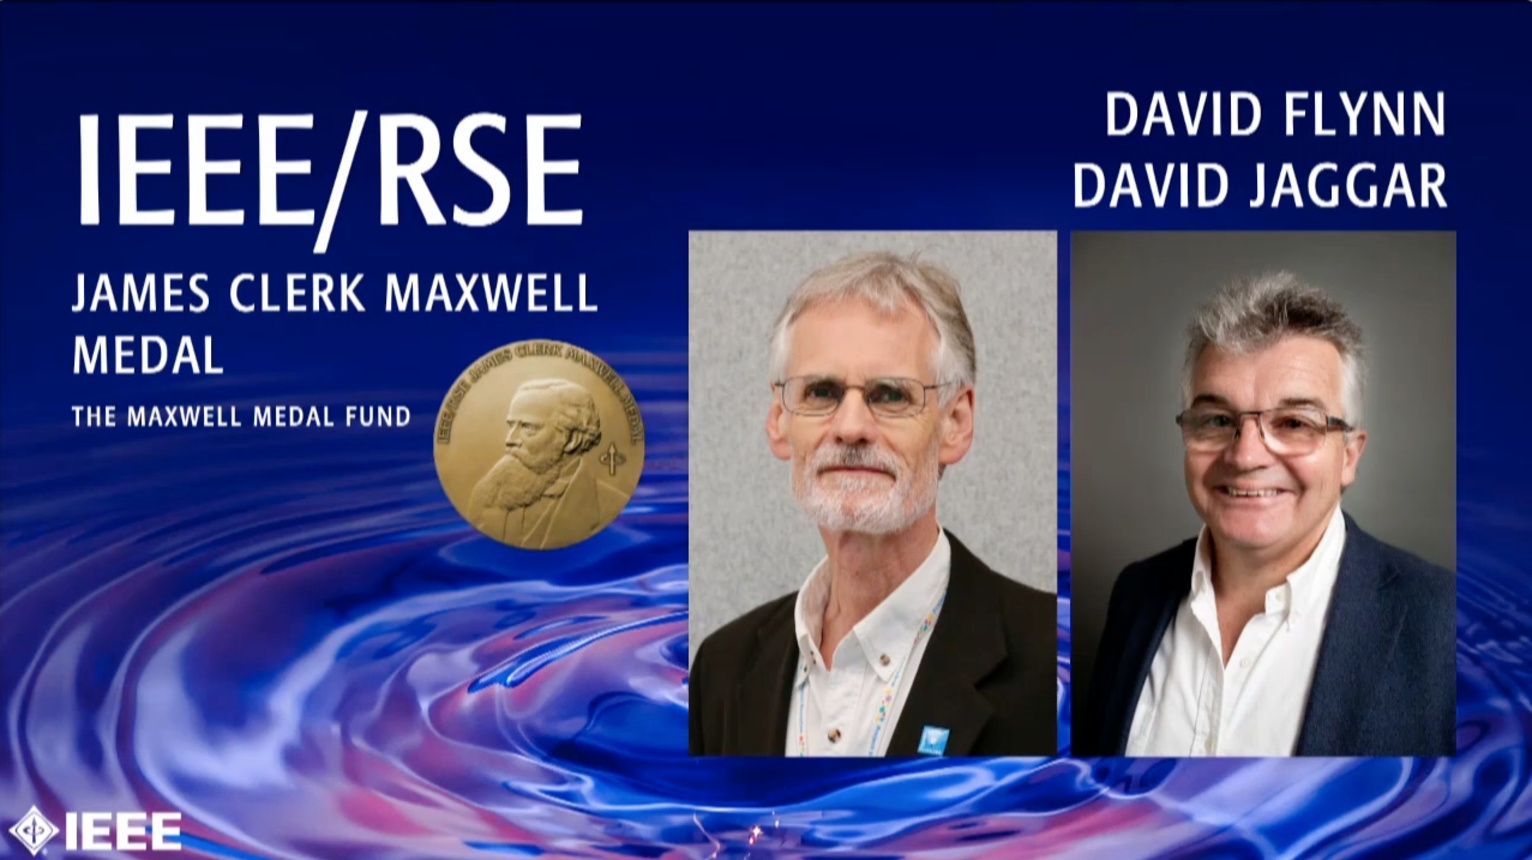 David Flynn and David Jaggar - IEEE/RSE James Clerk Maxwell Medal, 2019 IEEE Honors Ceremony